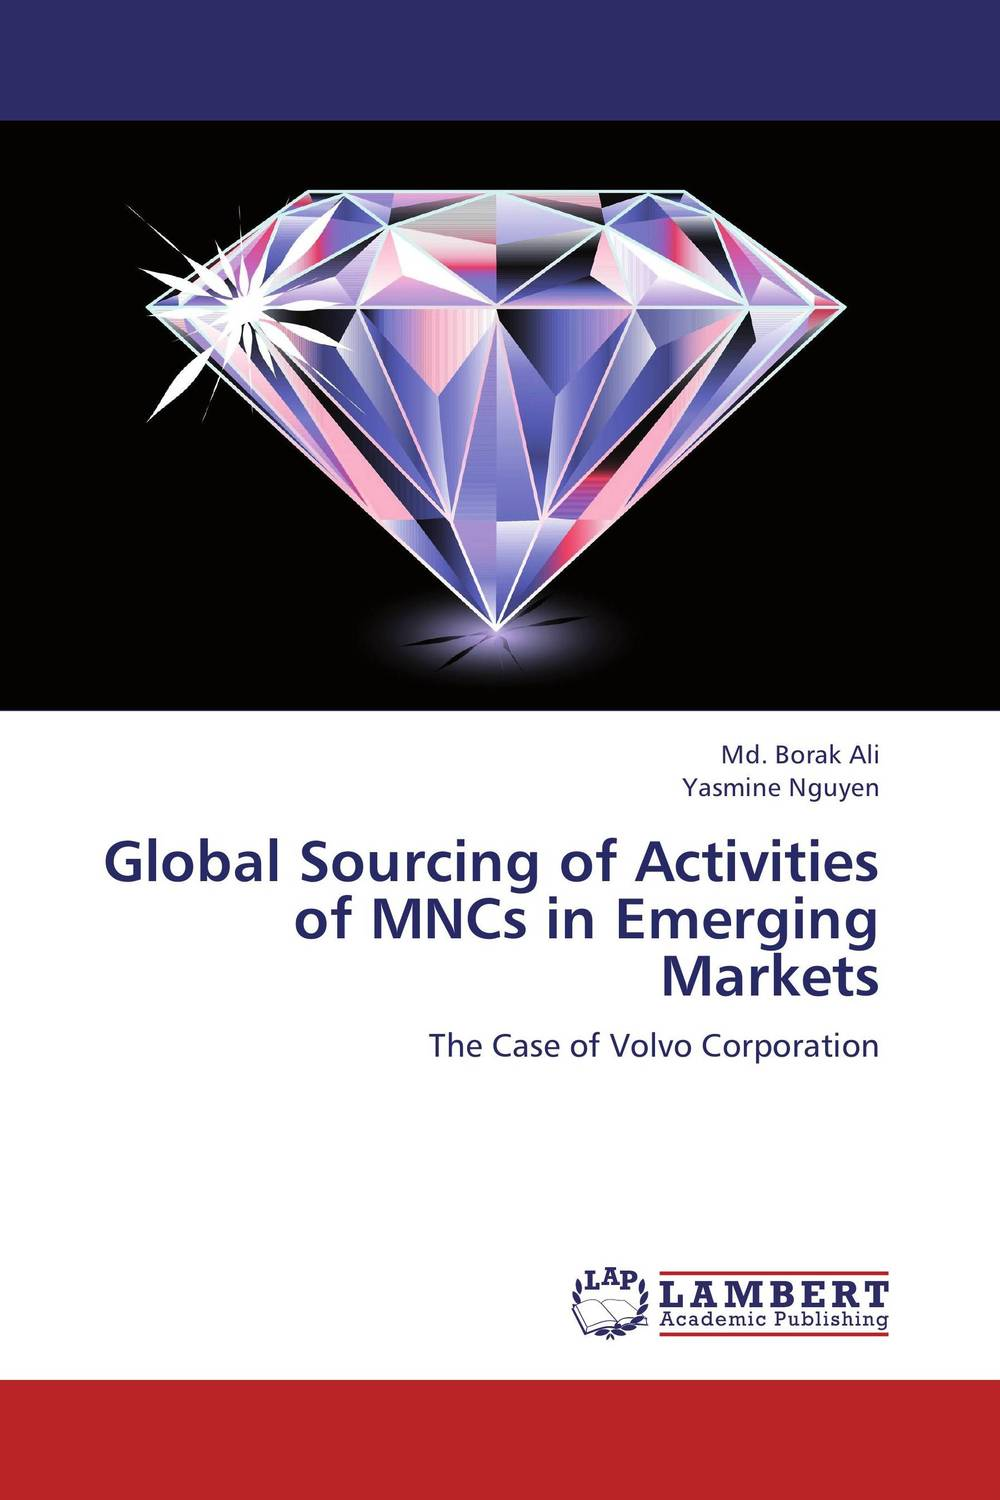 Global Sourcing of Activities of MNCs in Emerging Markets майка классическая printio sadhus of india